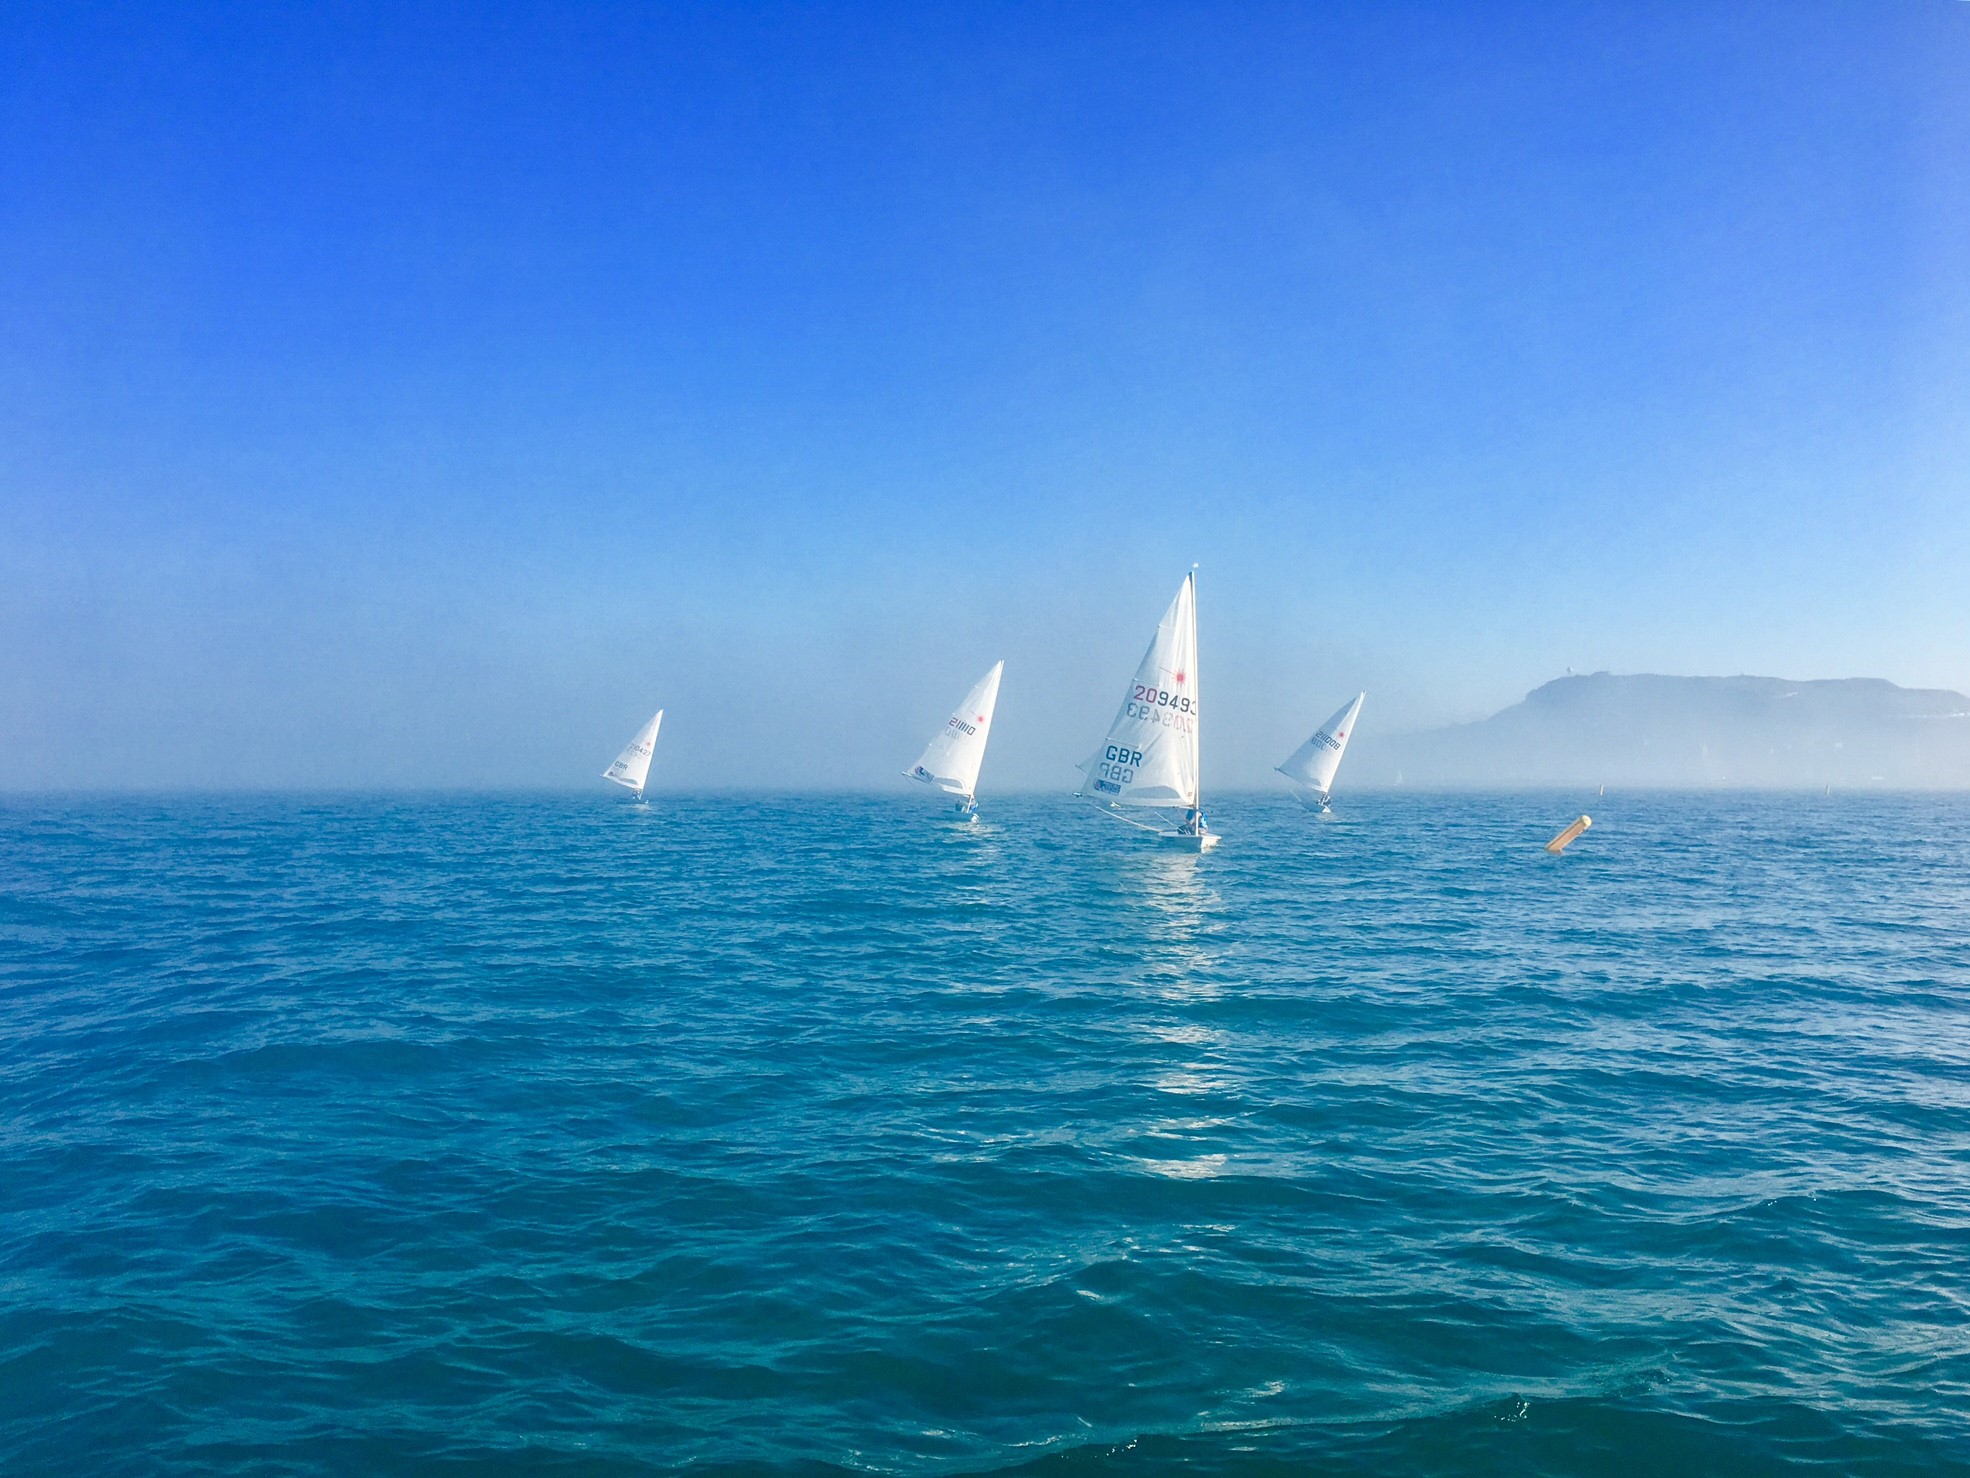 The first warm day of 2017. Pretty cool sailing in the fog as well.